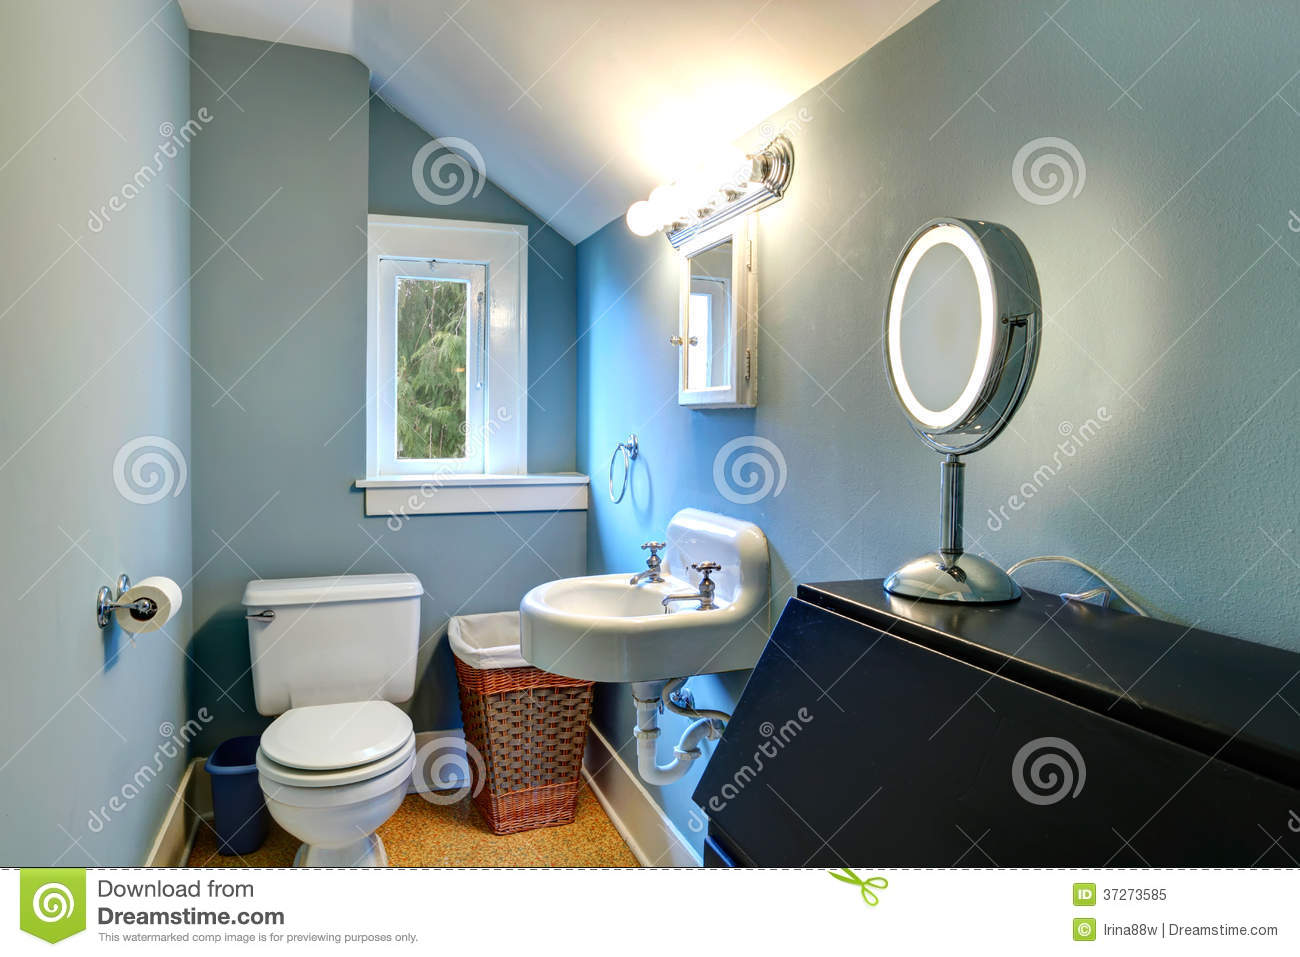 Bathroom Lighting Vaulted Ceiling vaulted light blue small bathroom royalty free stock photo - image